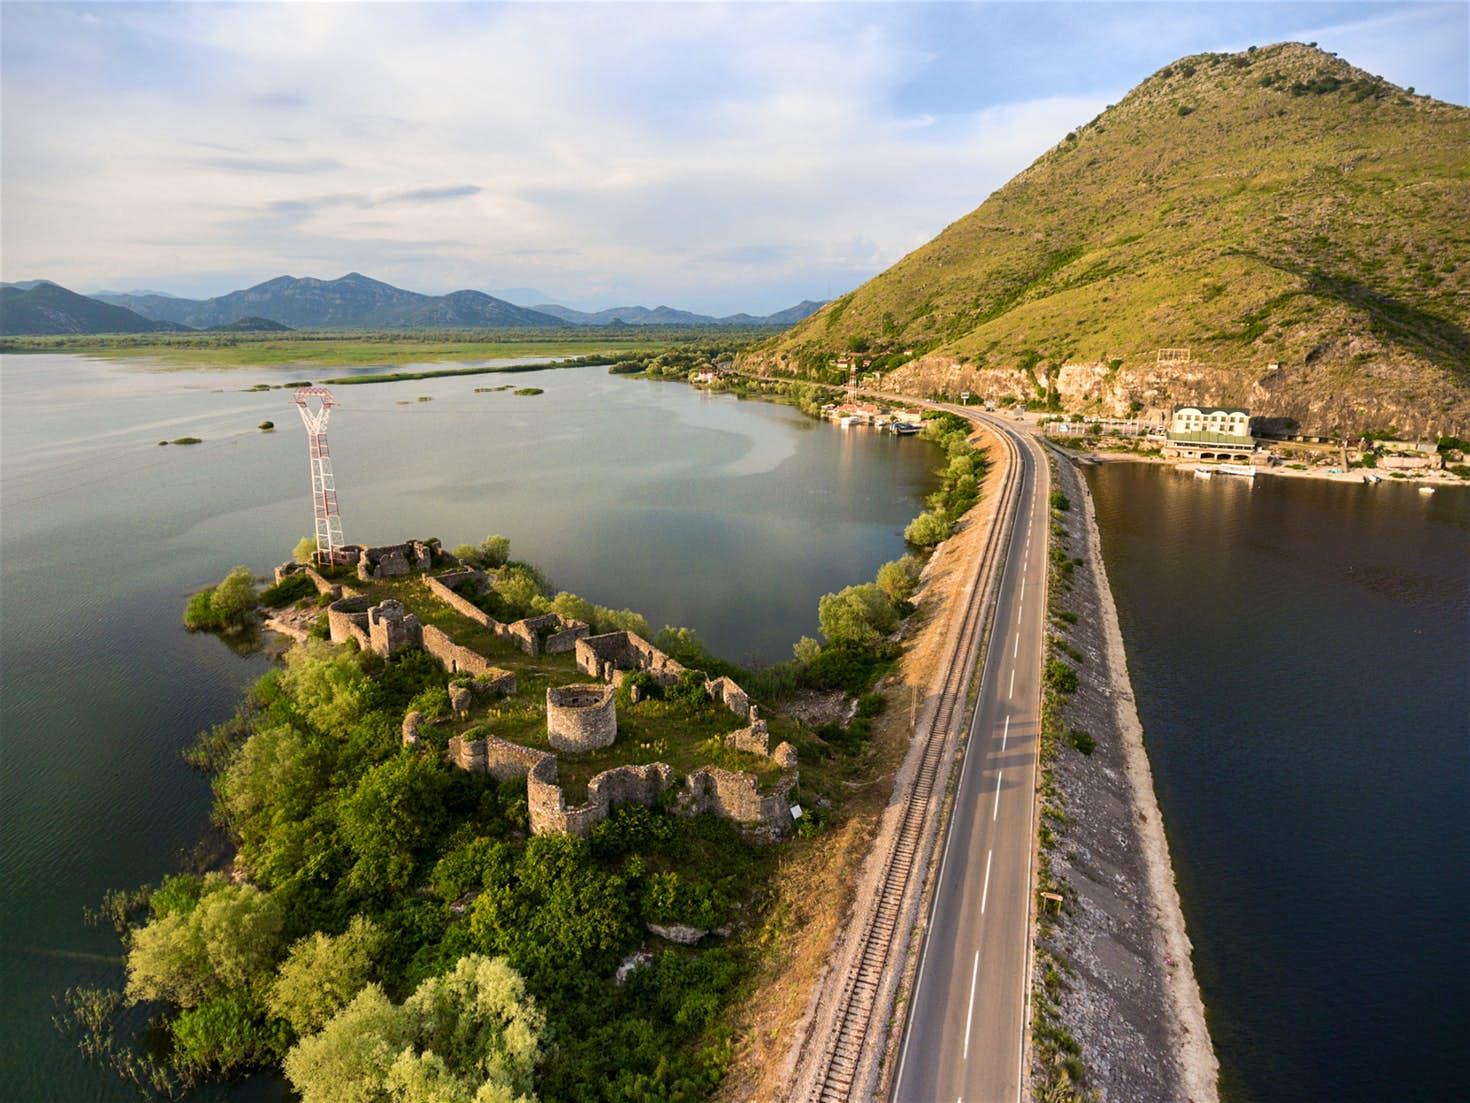 The train skirts the Lesendro Fortress ruins on Lake Skadar on its way to the Adriatic © Kekyalyaynen / Shutterstock